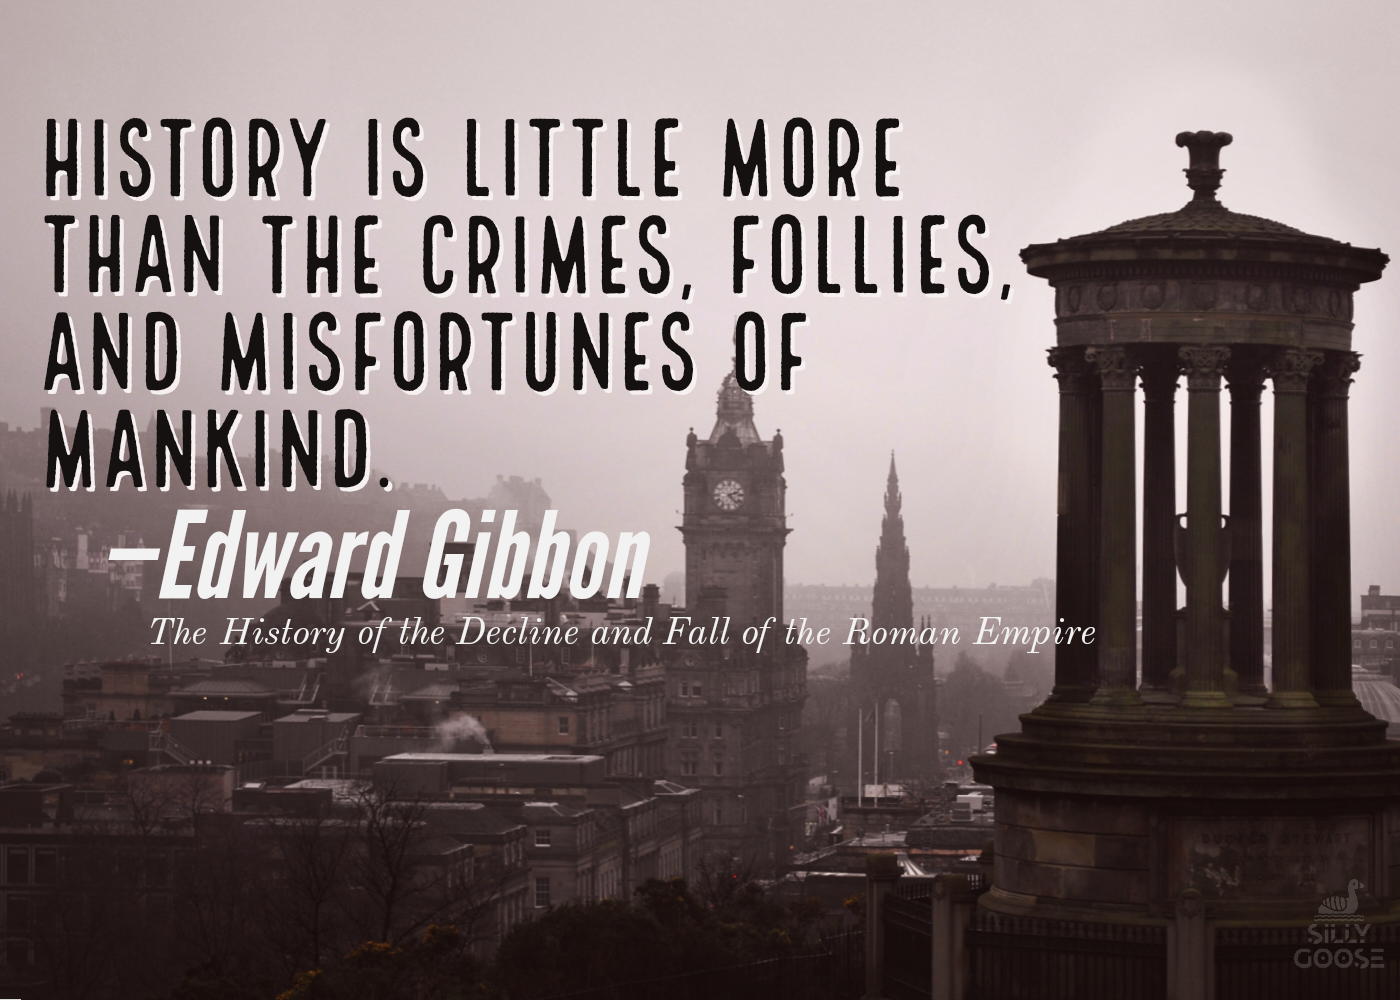 """History is little more than the crimes, follies, and misfortunes of mankind."" —Edward Gibbon, The History of the Decline and Fall of the Roman Empire [1400×1000]"